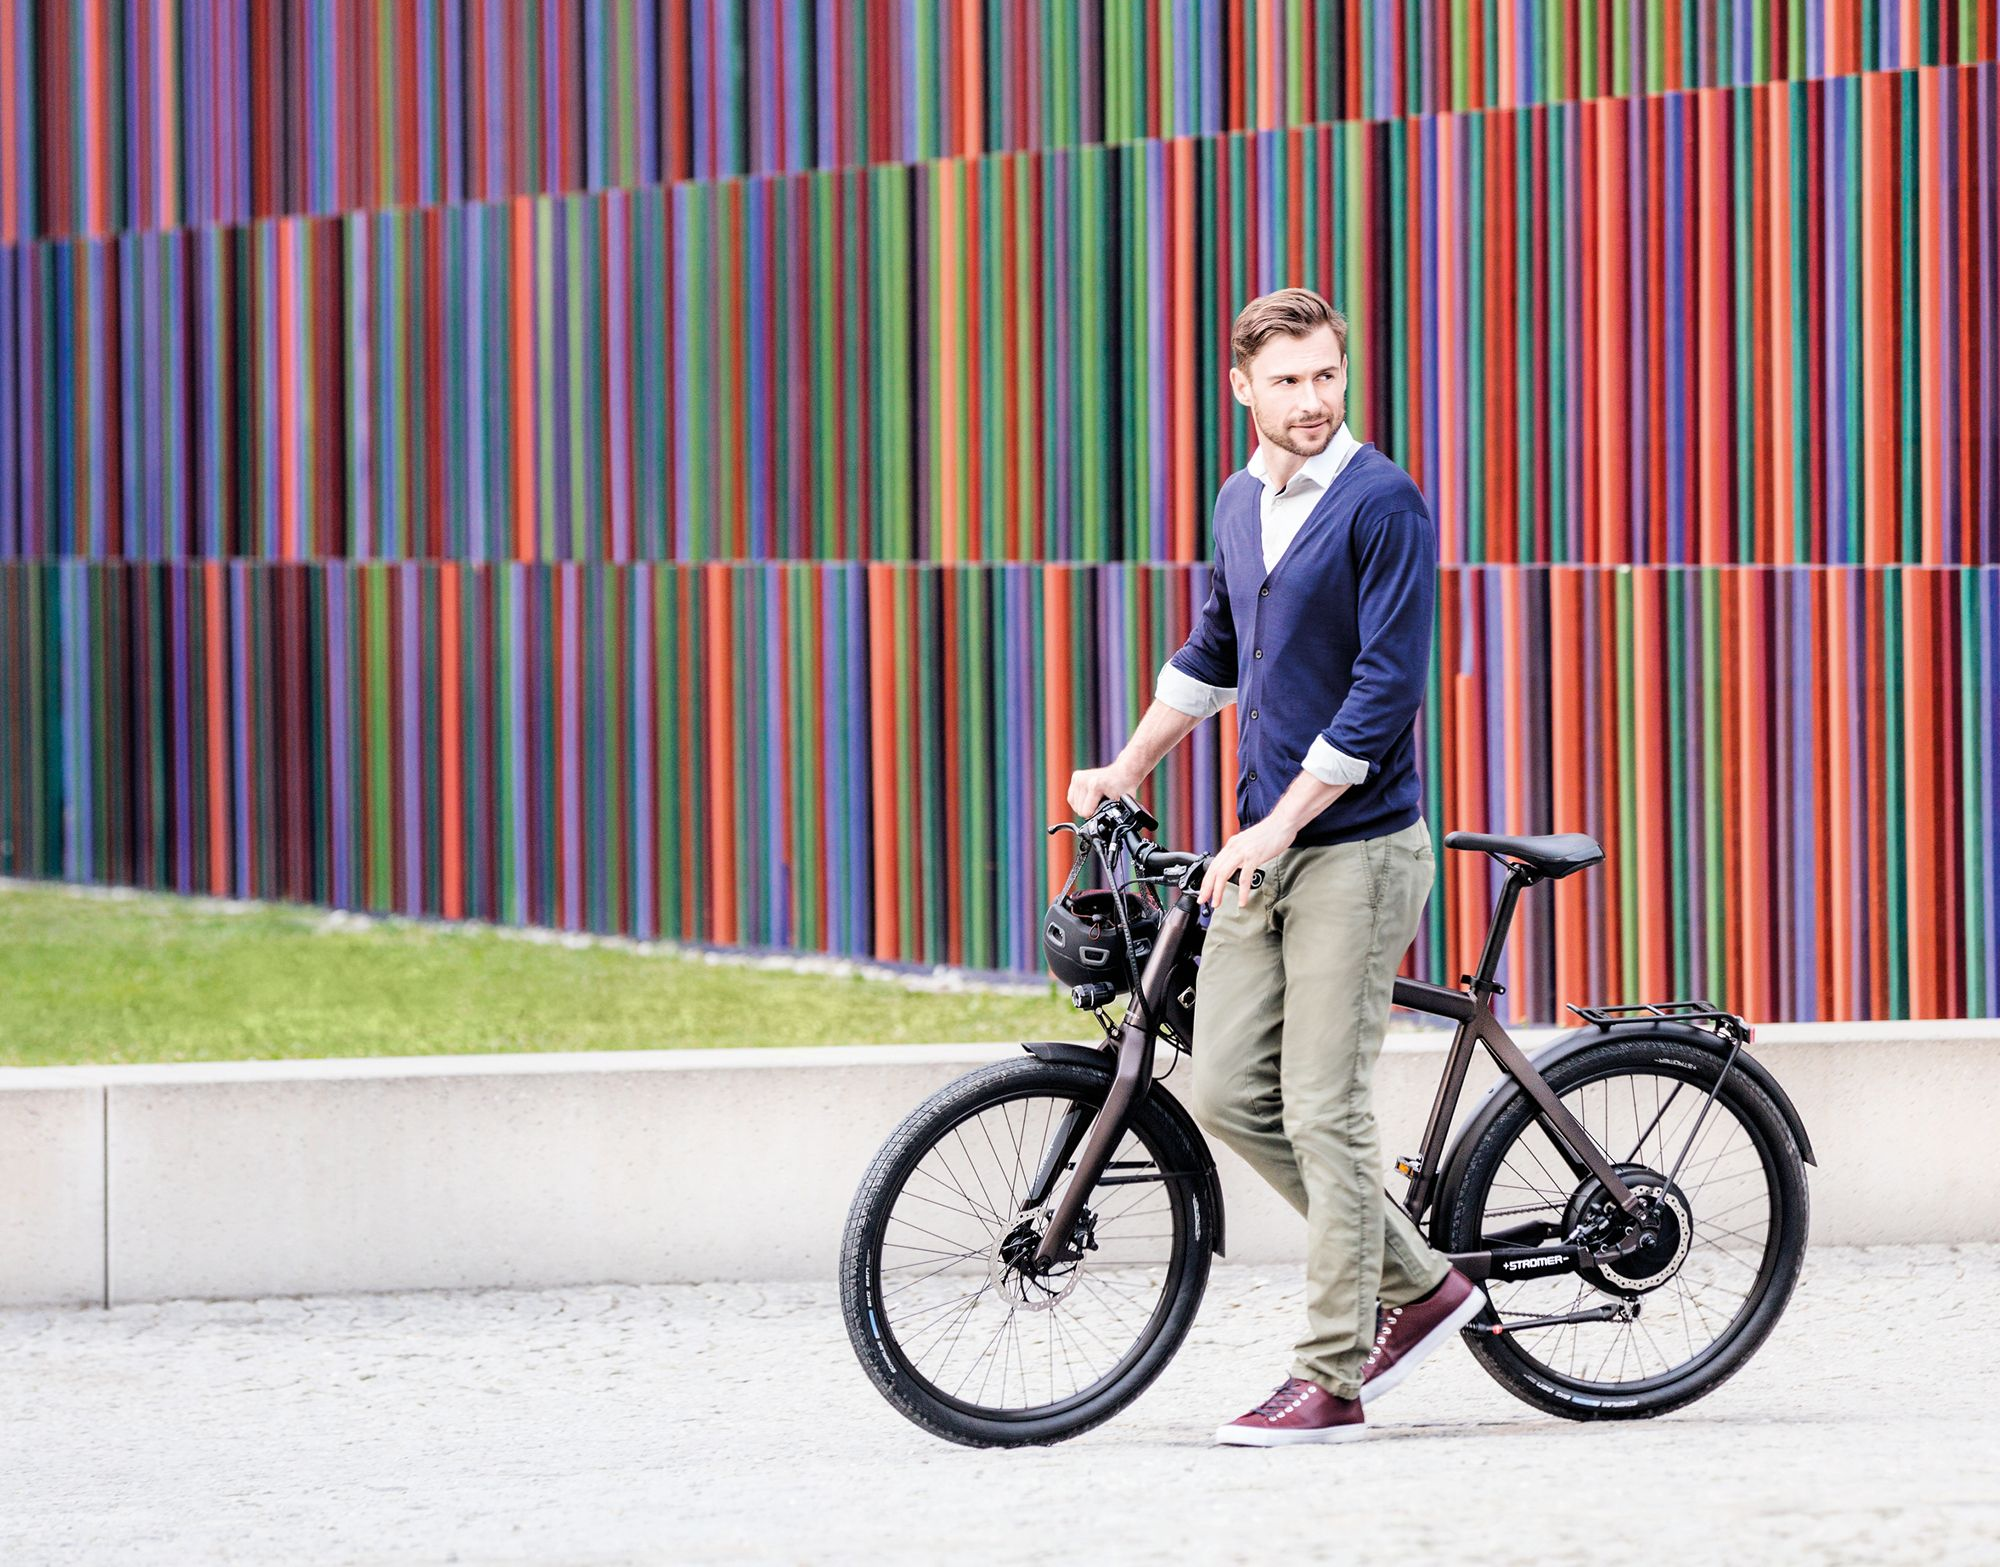 stromer bike, bicycle, e-bike